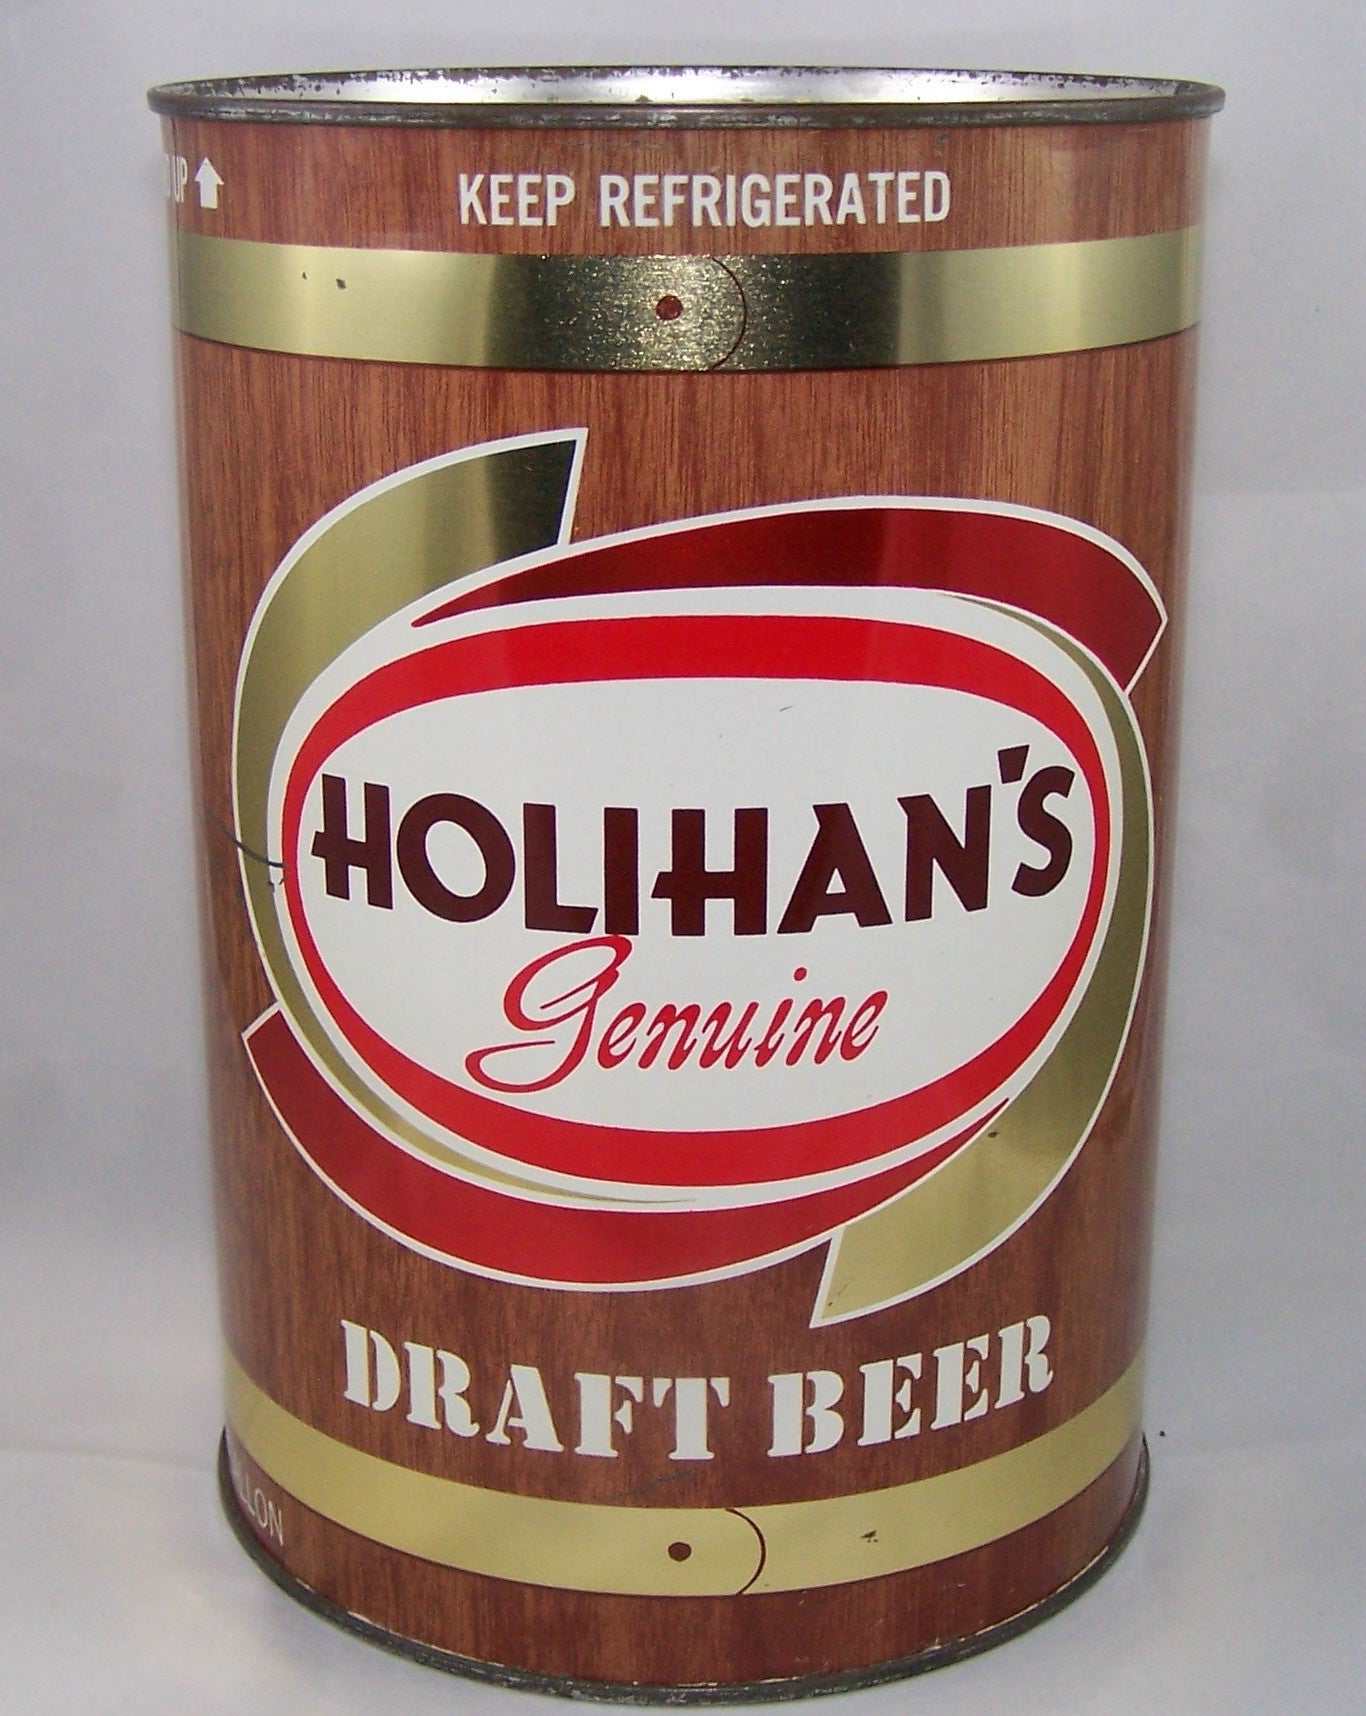 Holihan's Genuine Draft Beer, USBC 245-1, Grade 1 to 1/1+ Sold on ebay